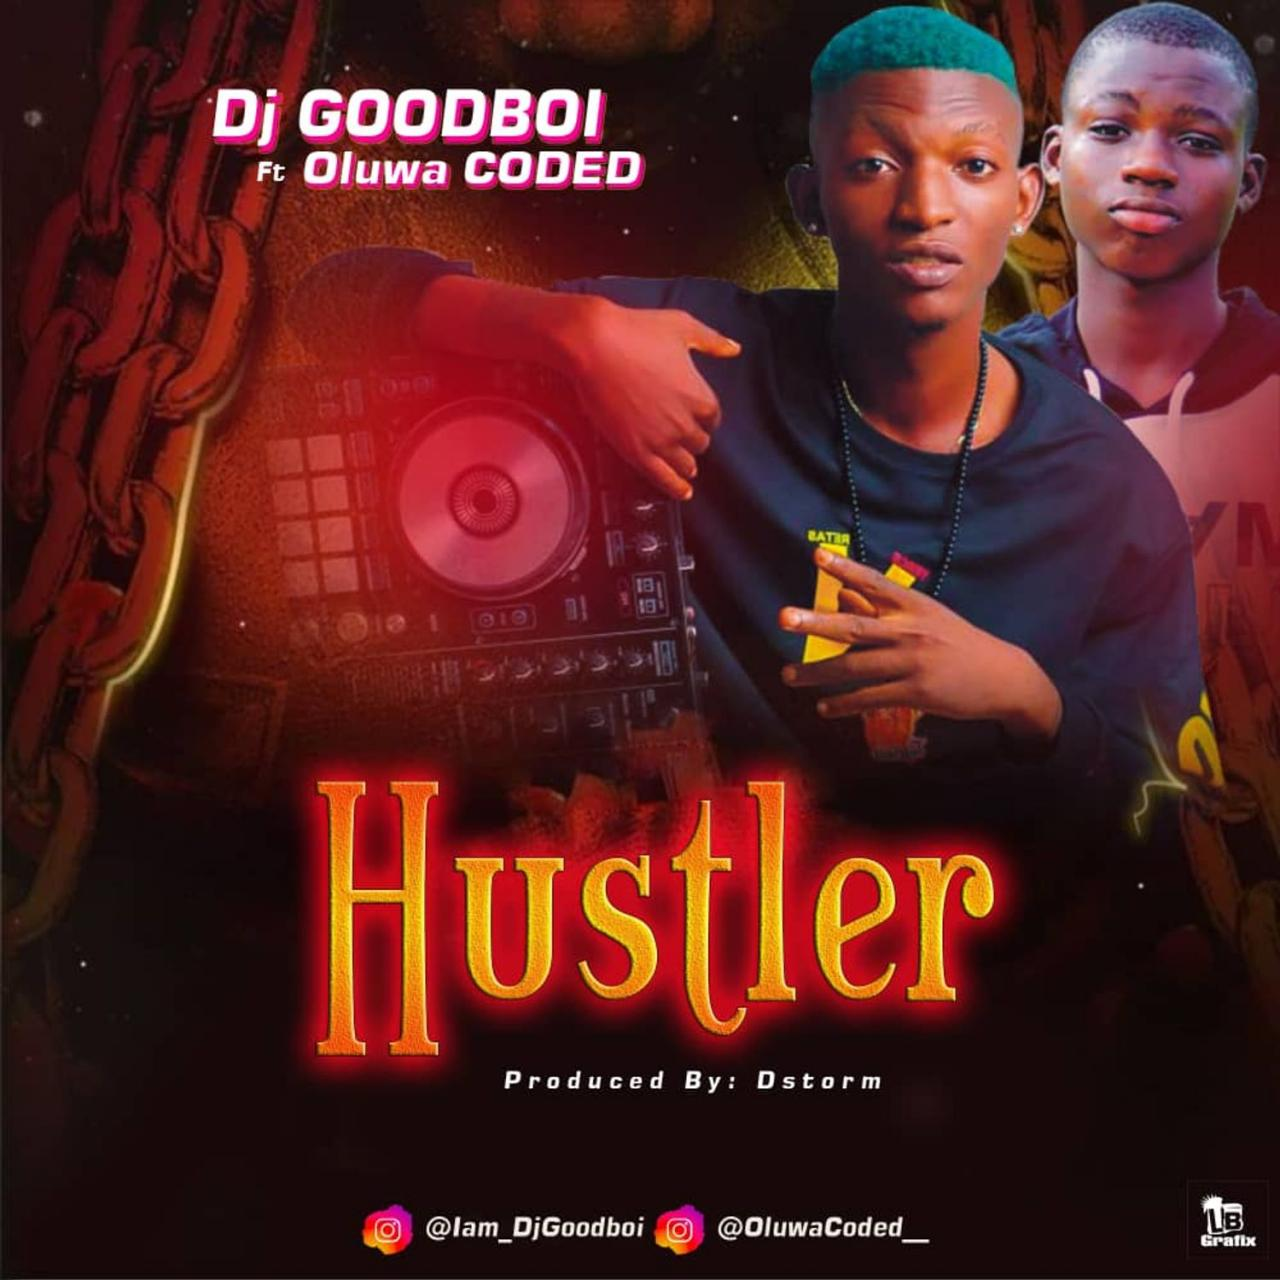 DJ Goodboi Ft. Oluwa Coded - Hustler